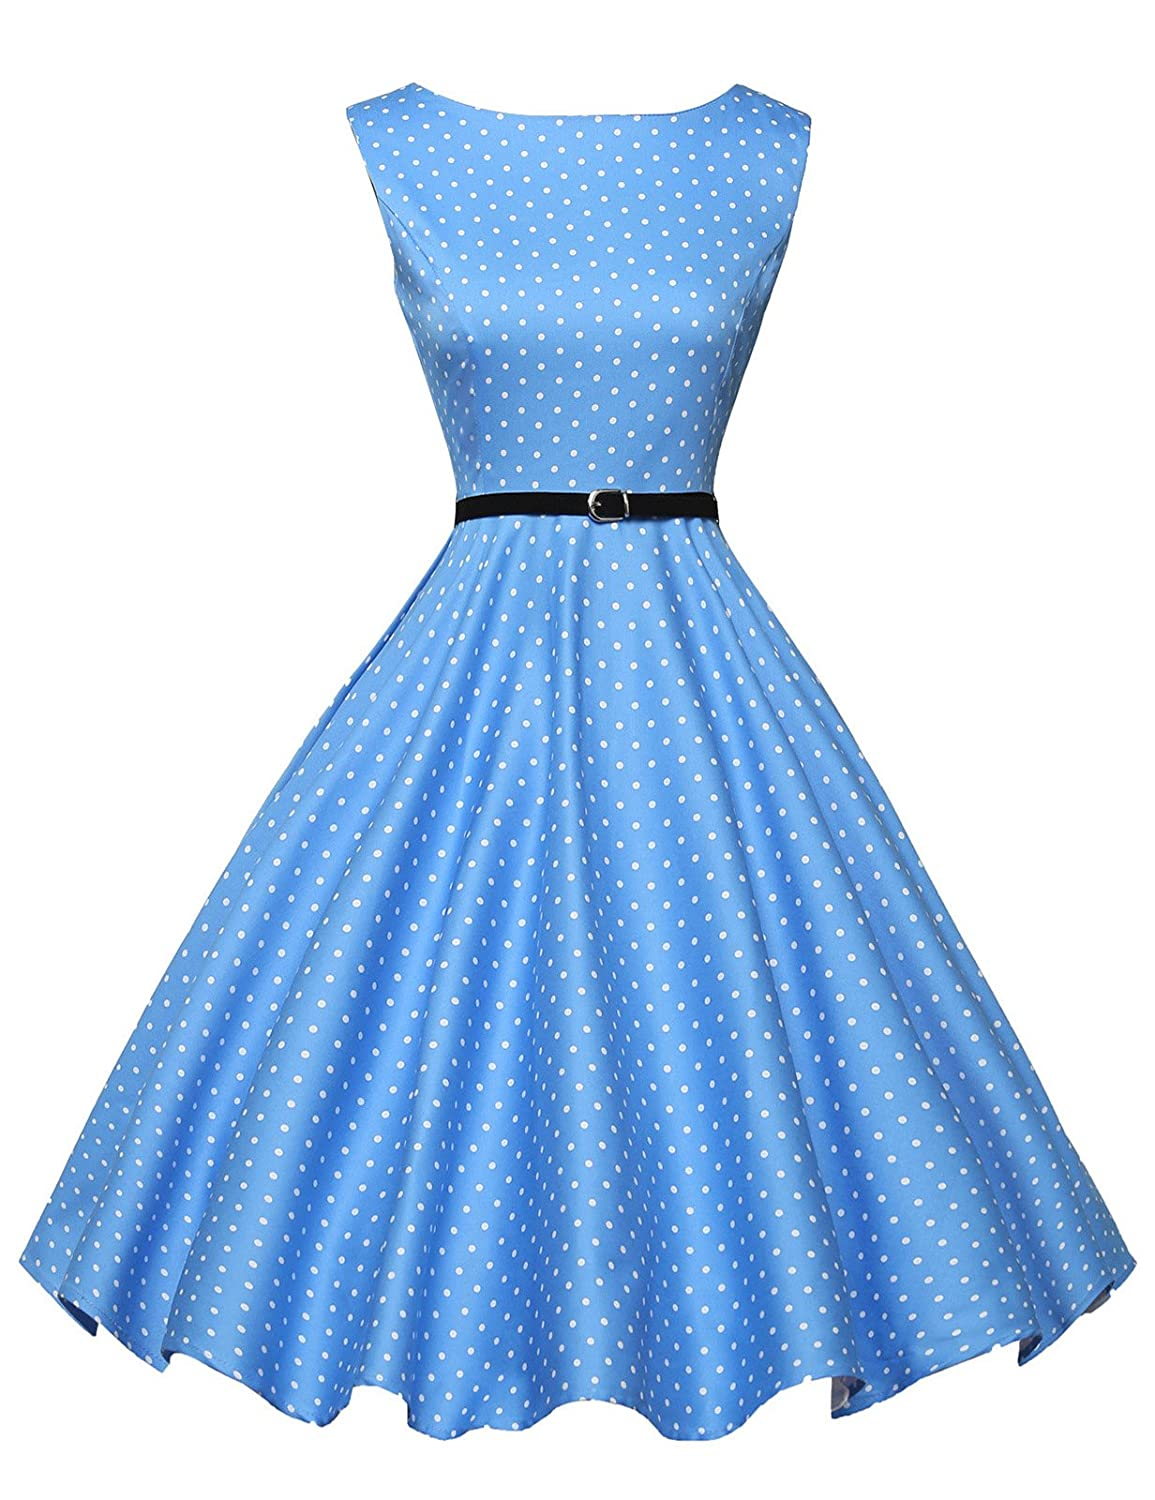 1950s Polka Dot Dresses GRACE KARIN BoatNeck Sleeveless Vintage Tea Dress with Belt $30.99 AT vintagedancer.com